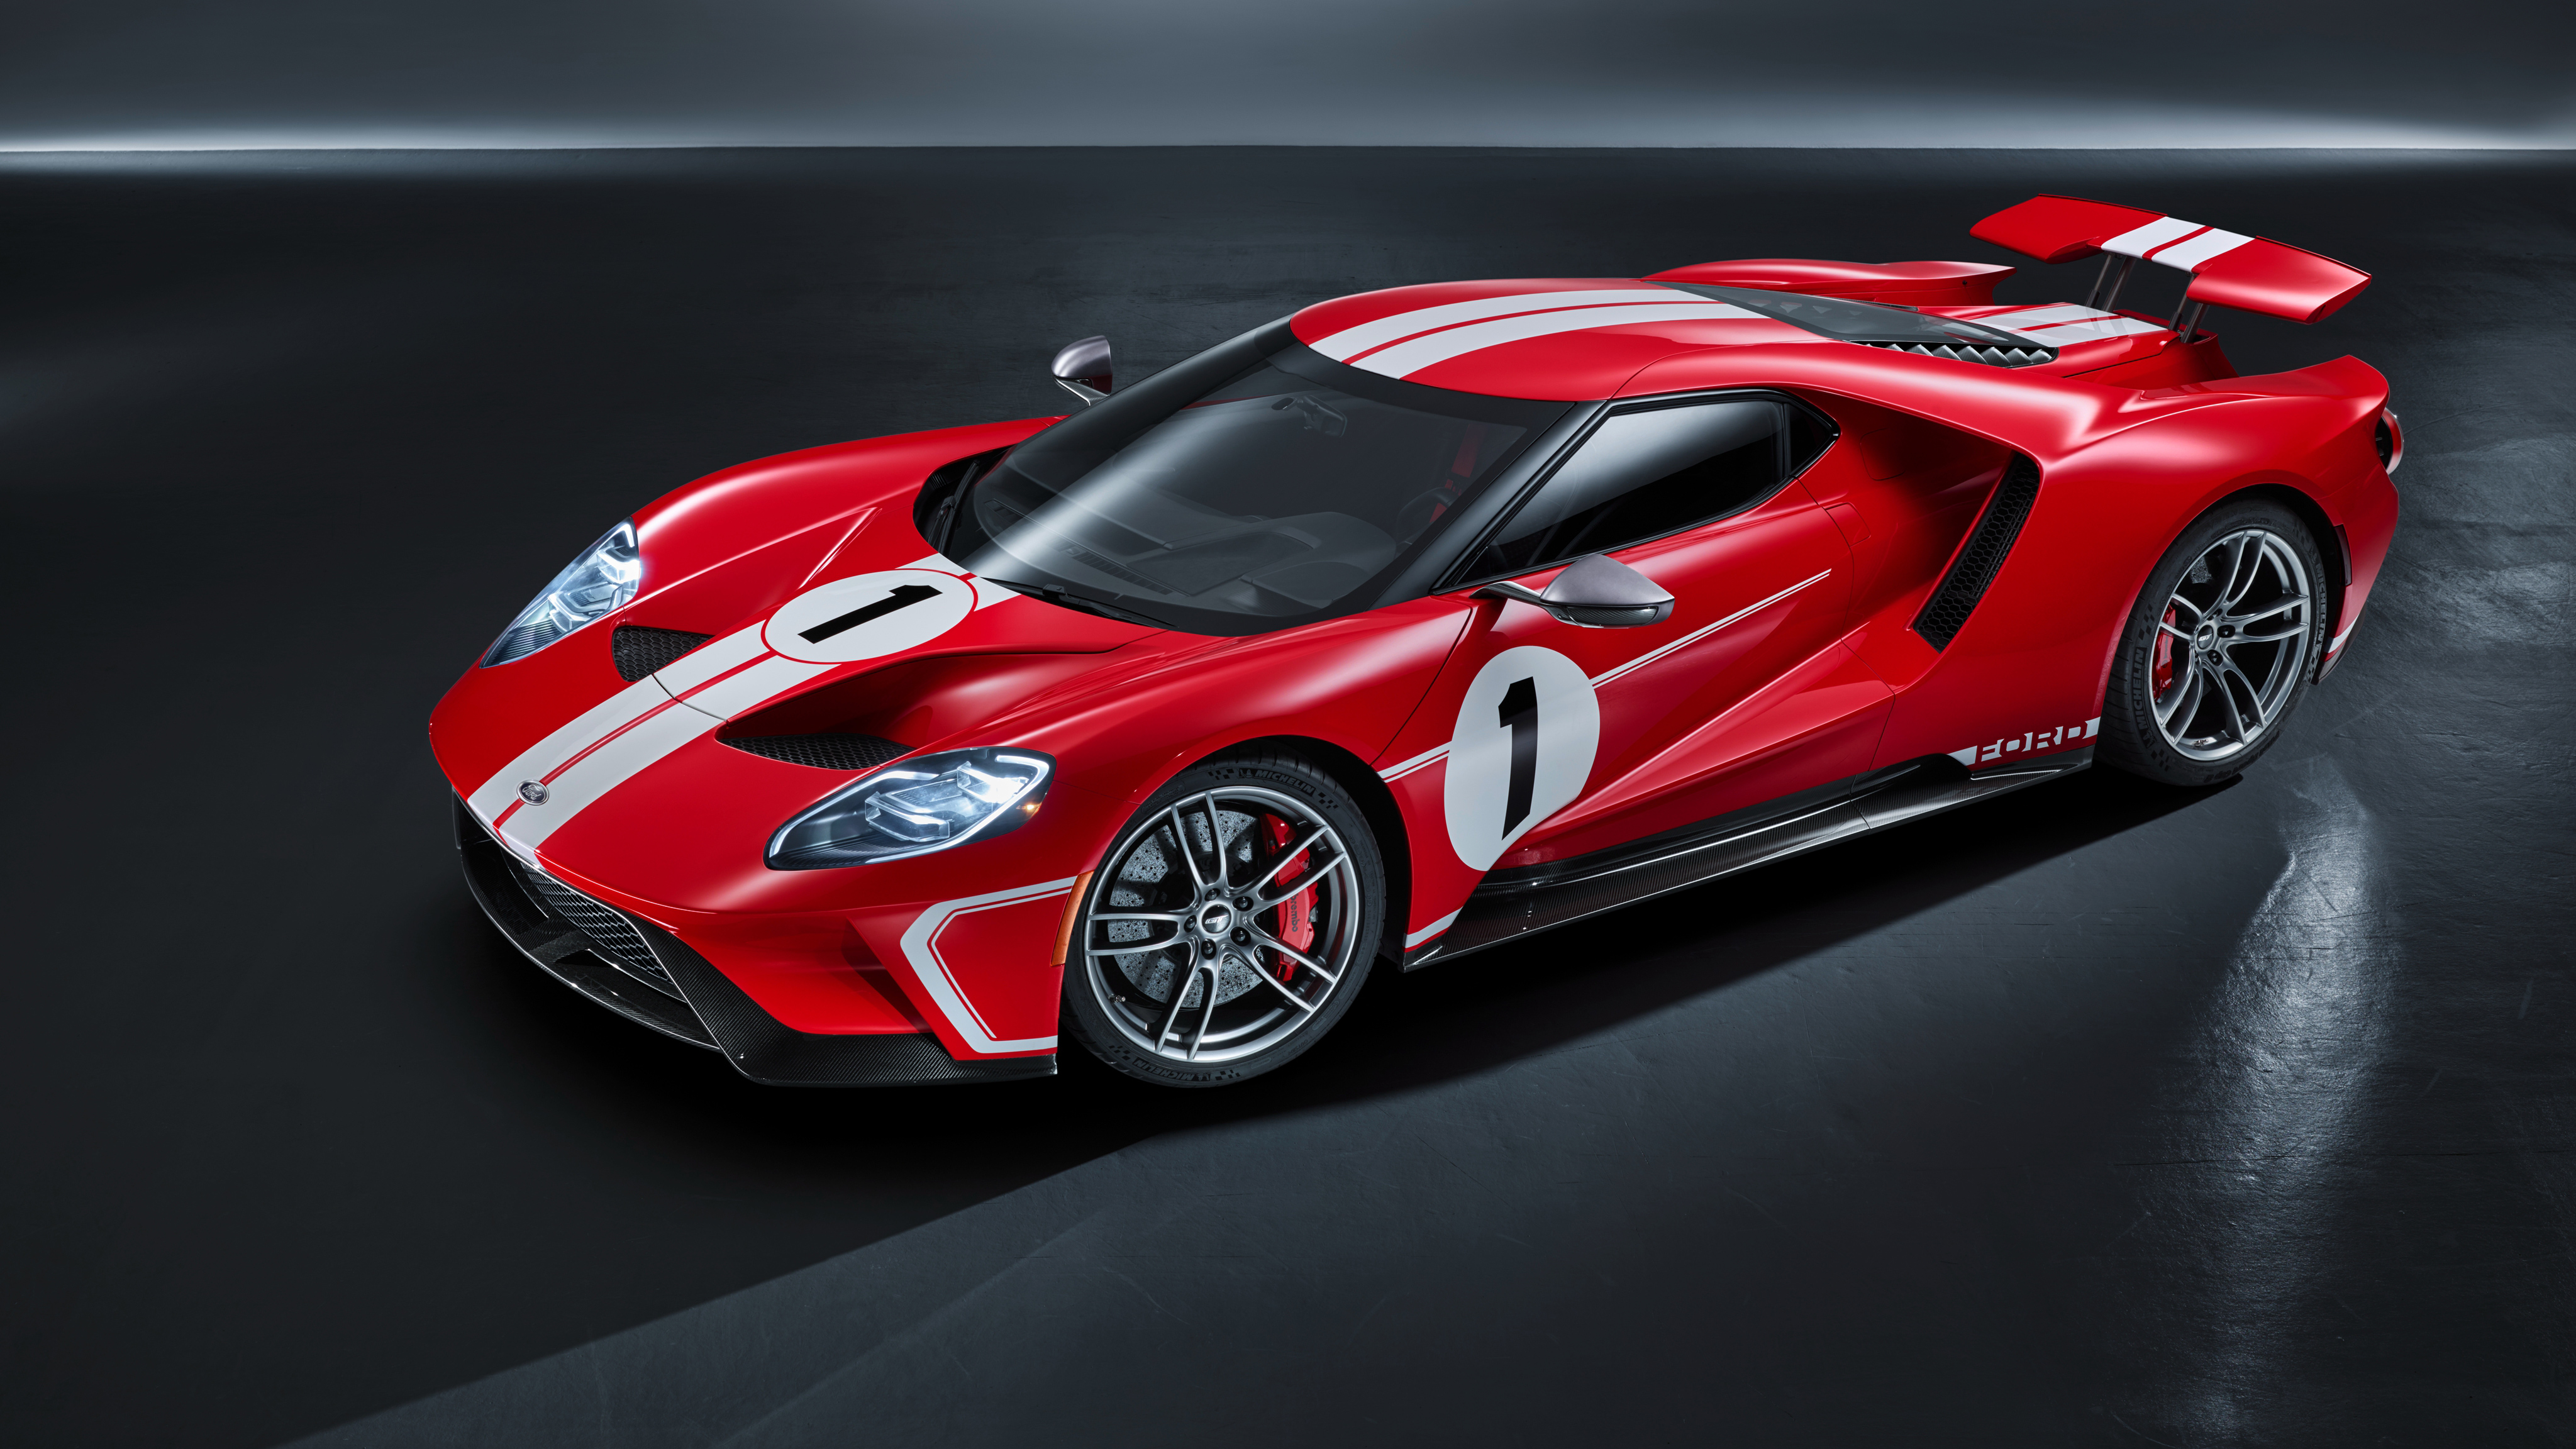 2018 ford gt 67 heritage edition 4k 4 wallpaper | hd car wallpapers